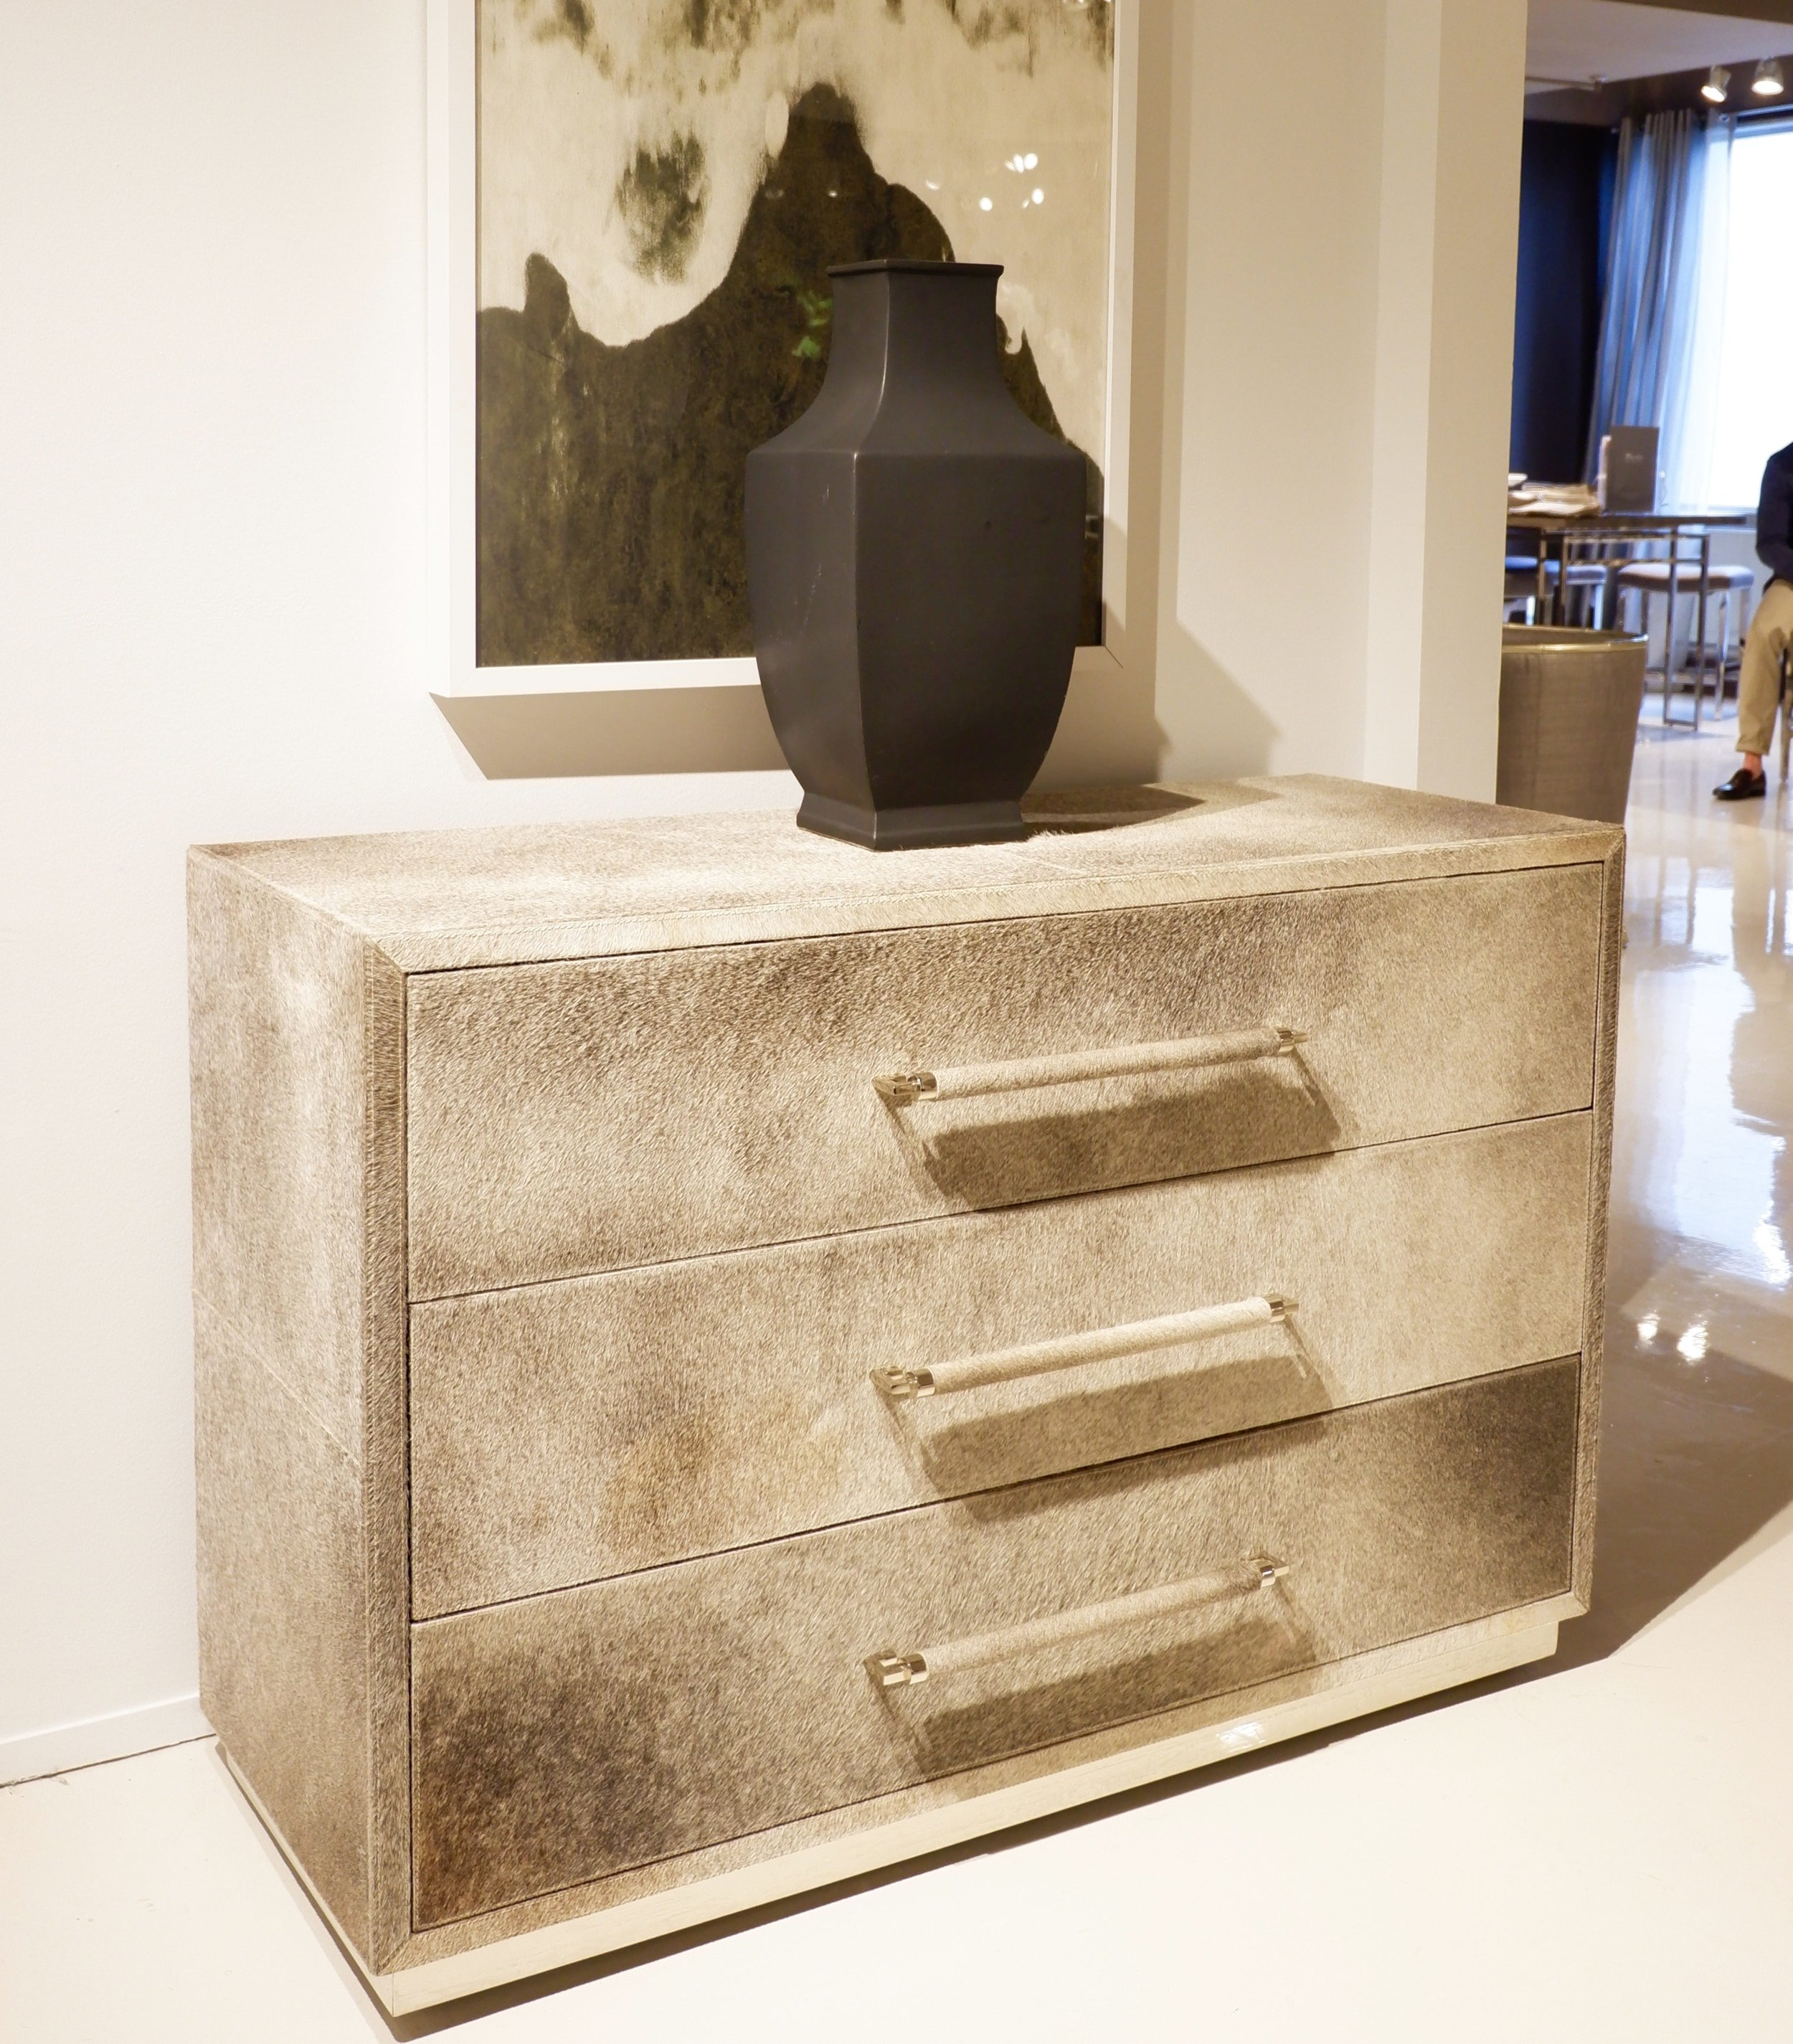 A hide-covered chest at Bernhardt.